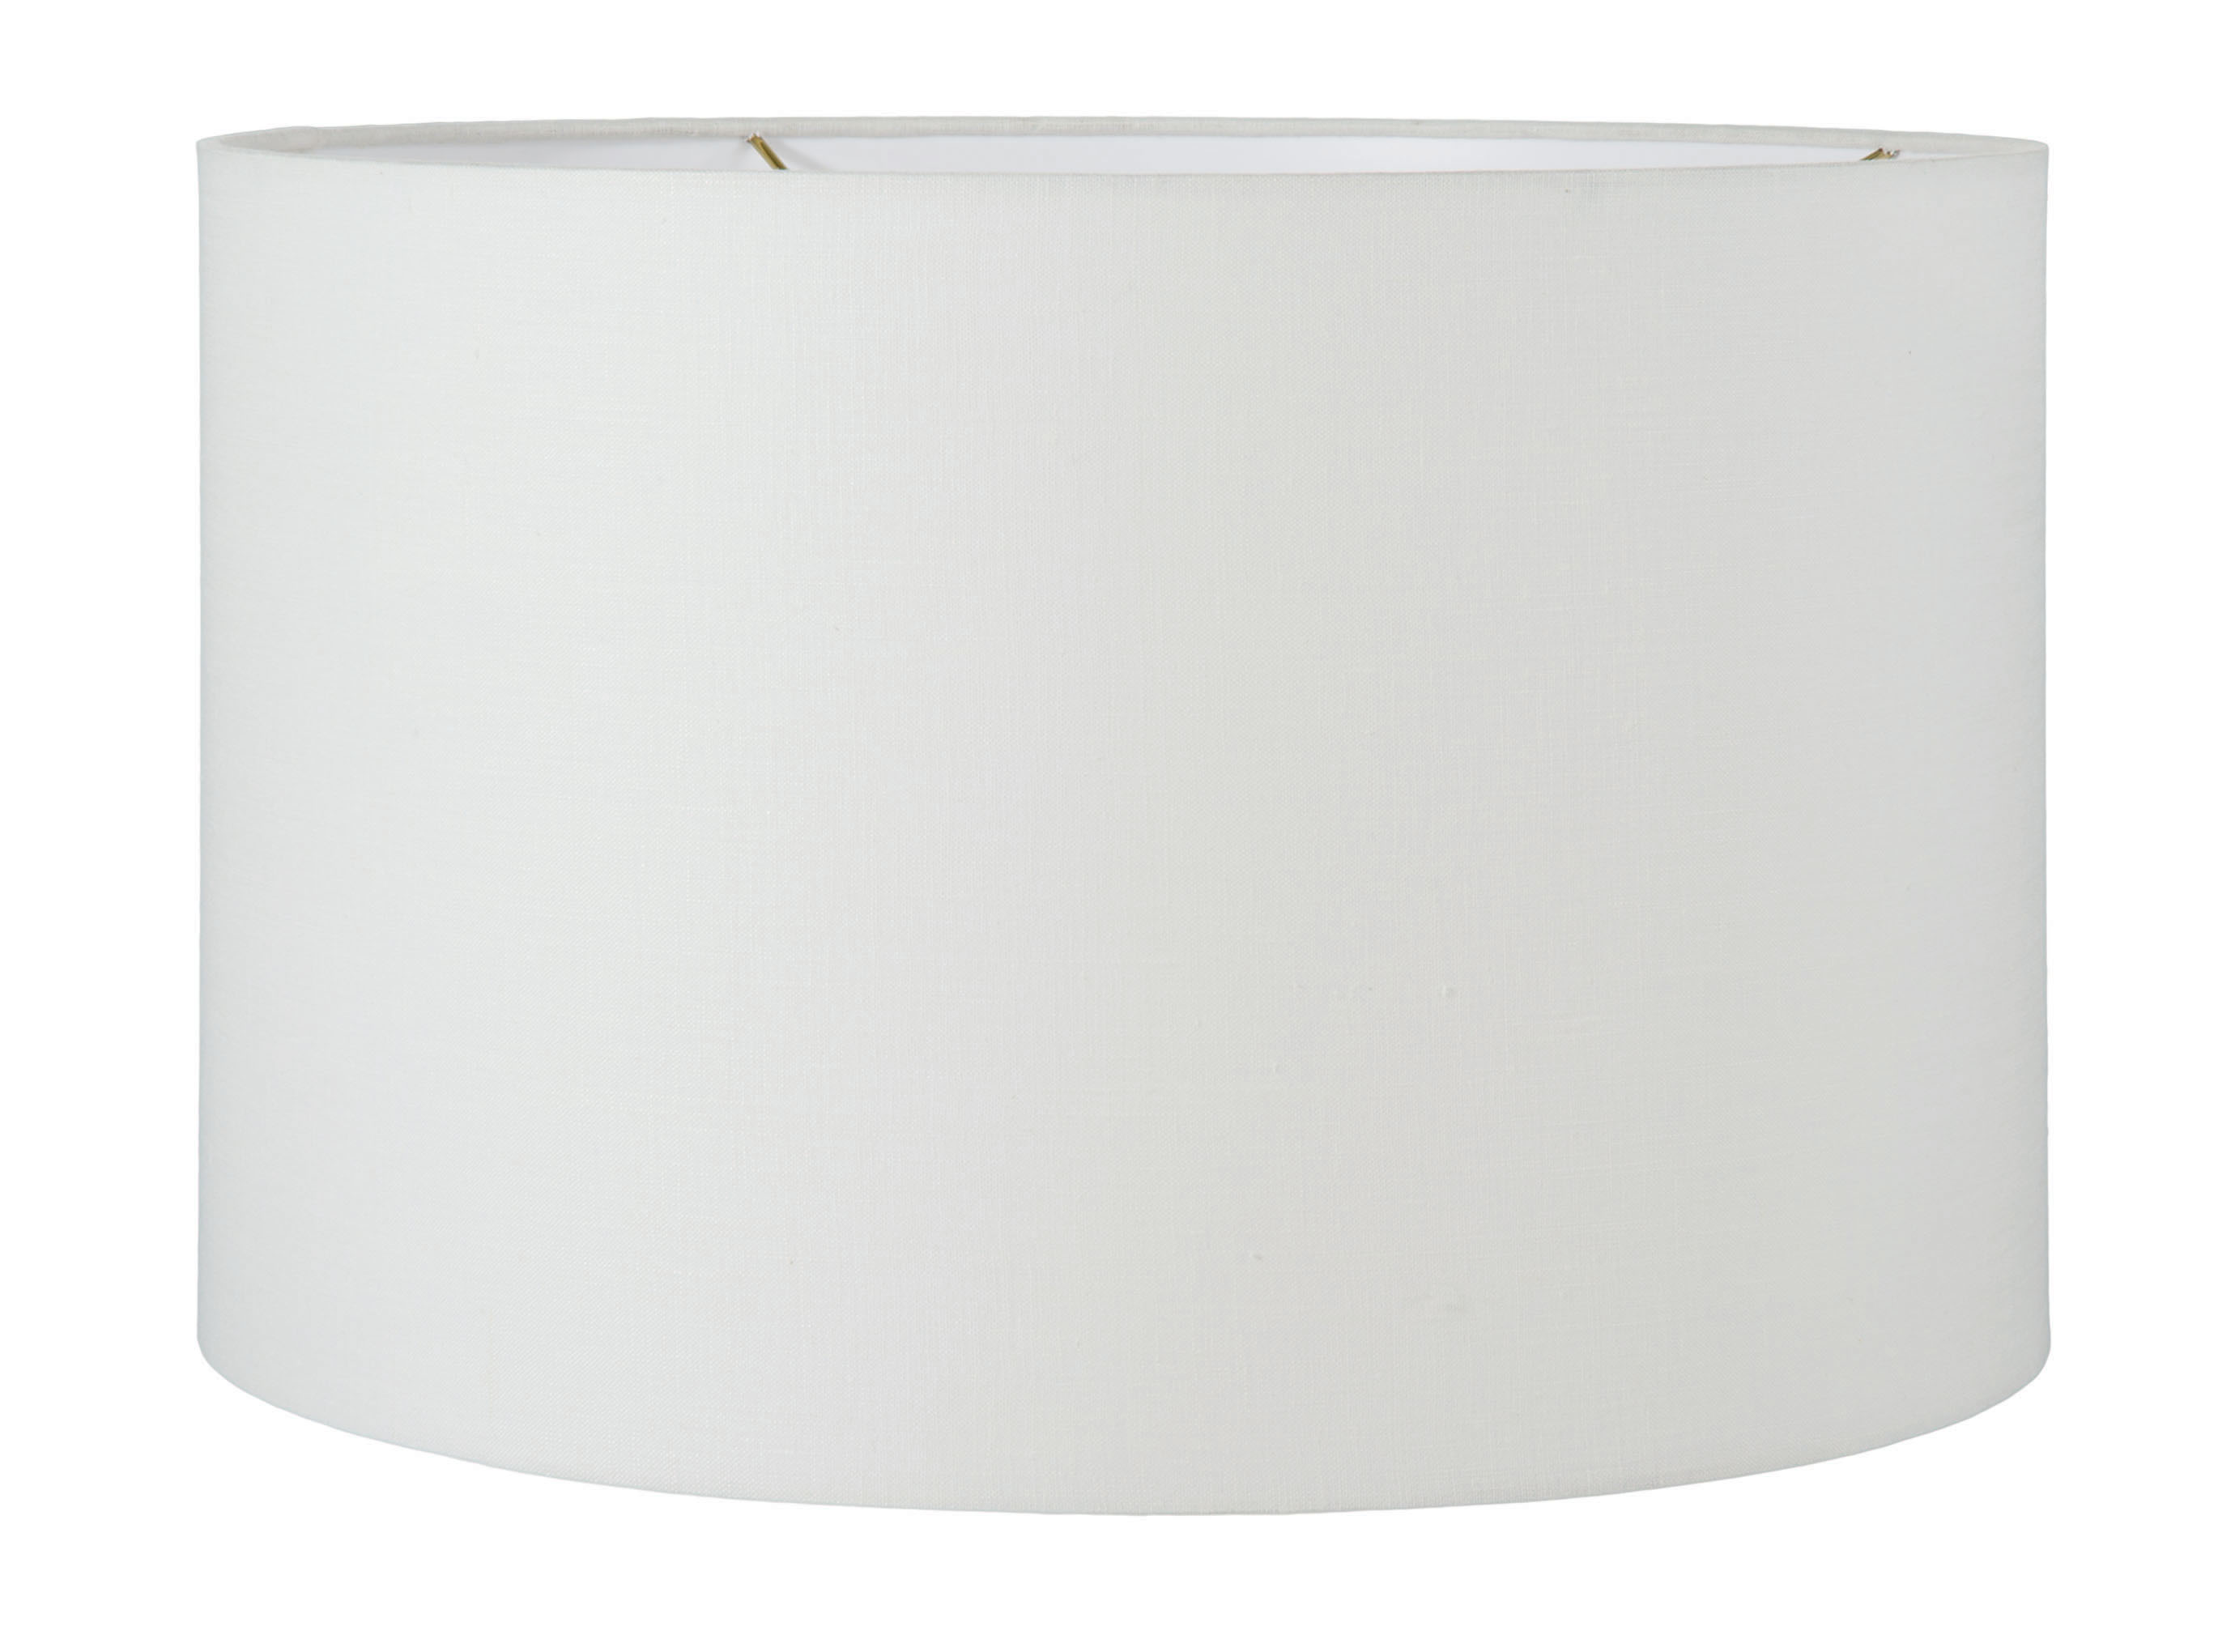 Off White Linen Drum Lampshade 05641f B Amp P Lamp Supply